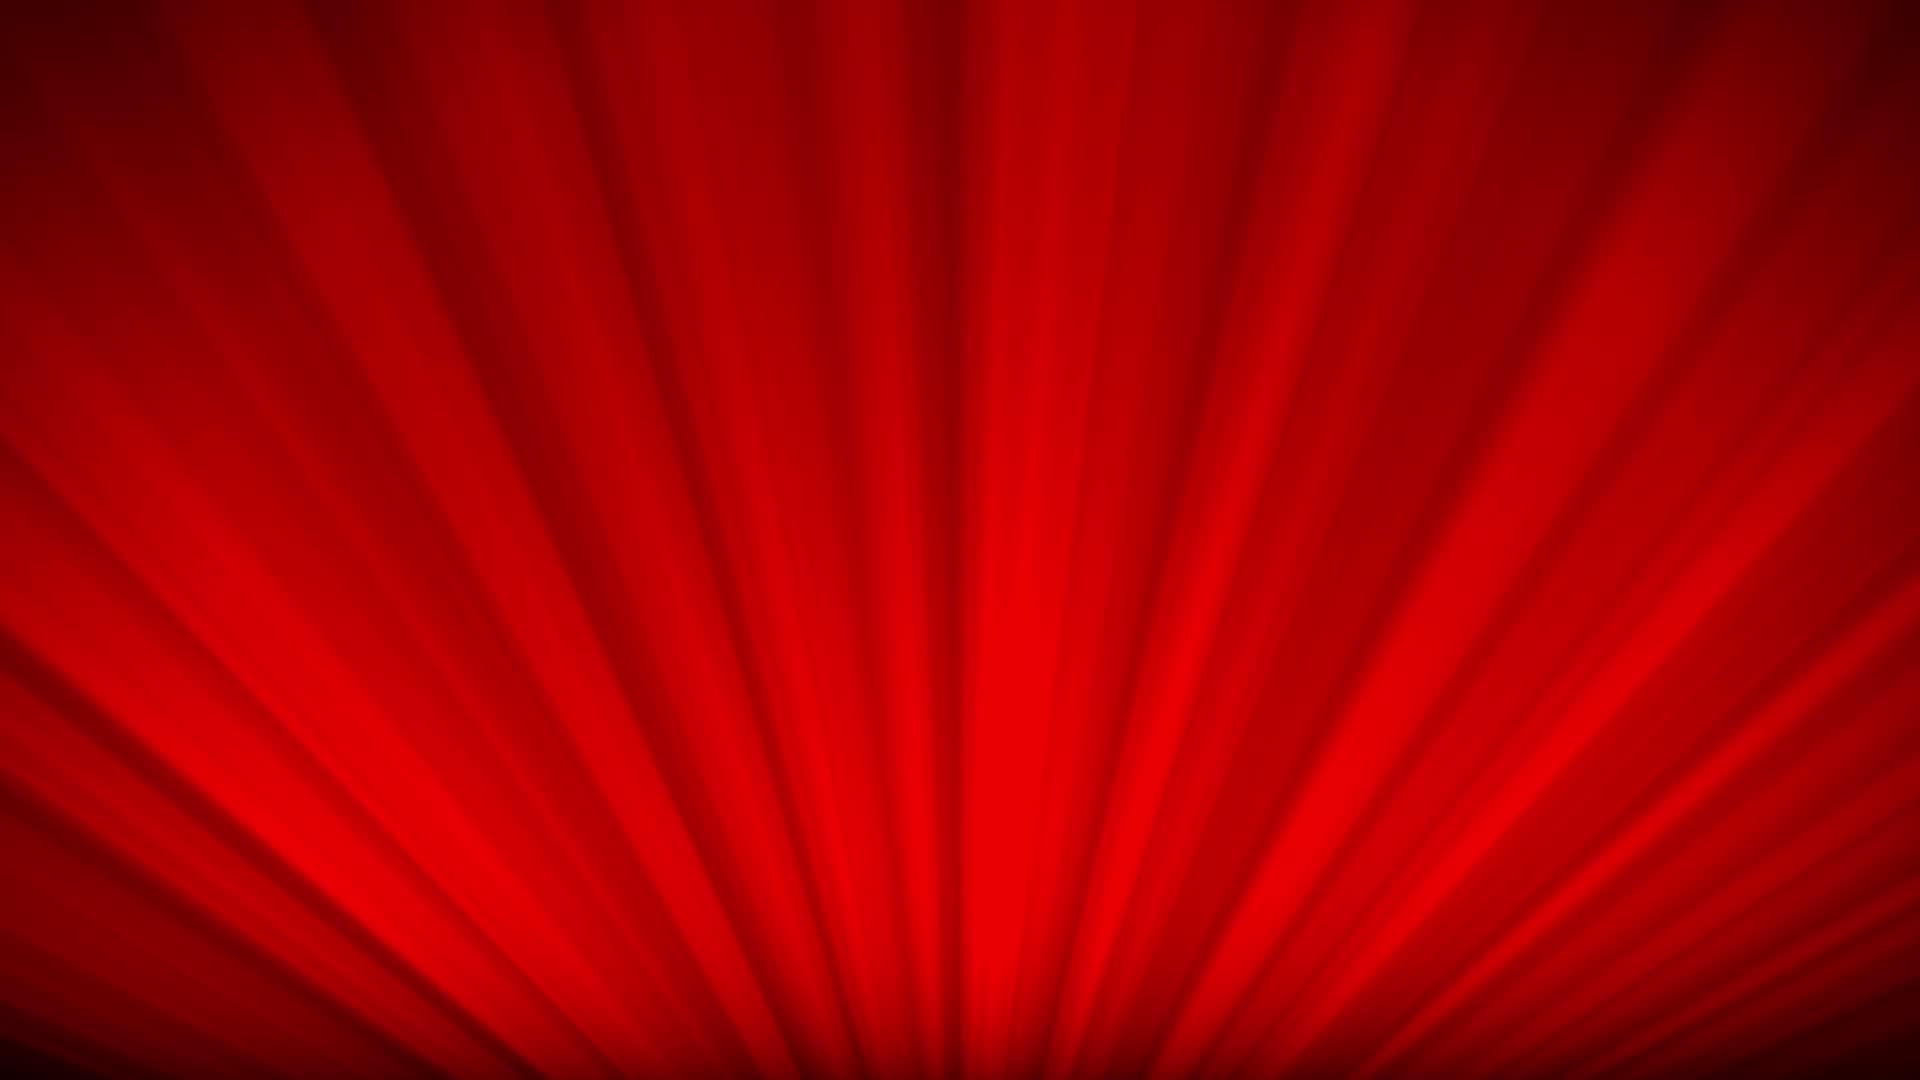 Red Abstract Background Wallpaper 1920x1080 10915